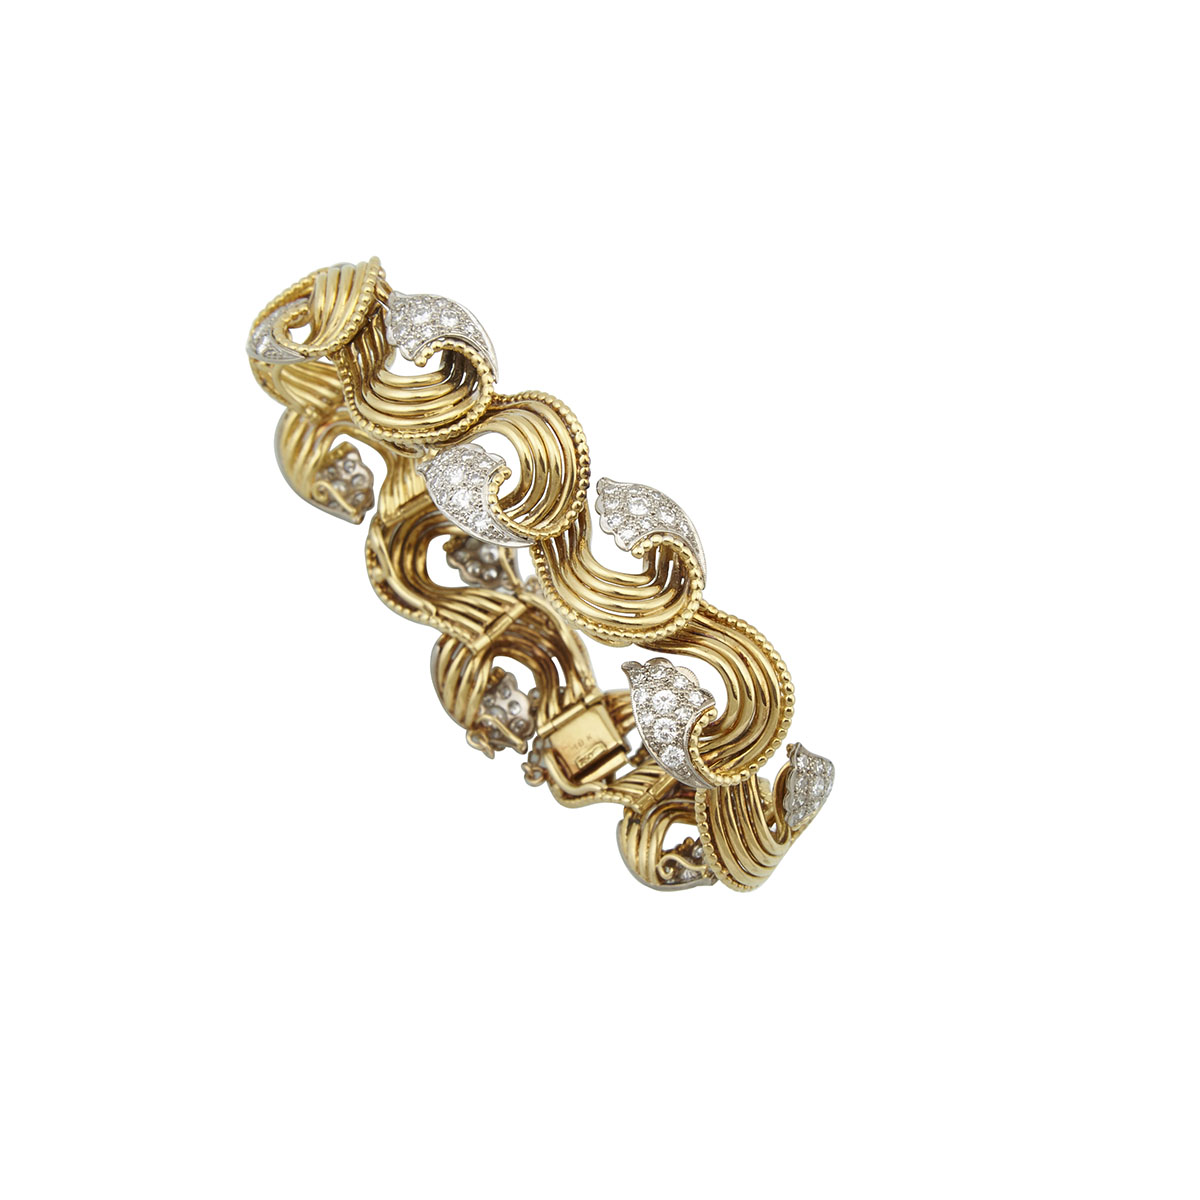 18K Yellow Gold And White Gold Bracelet